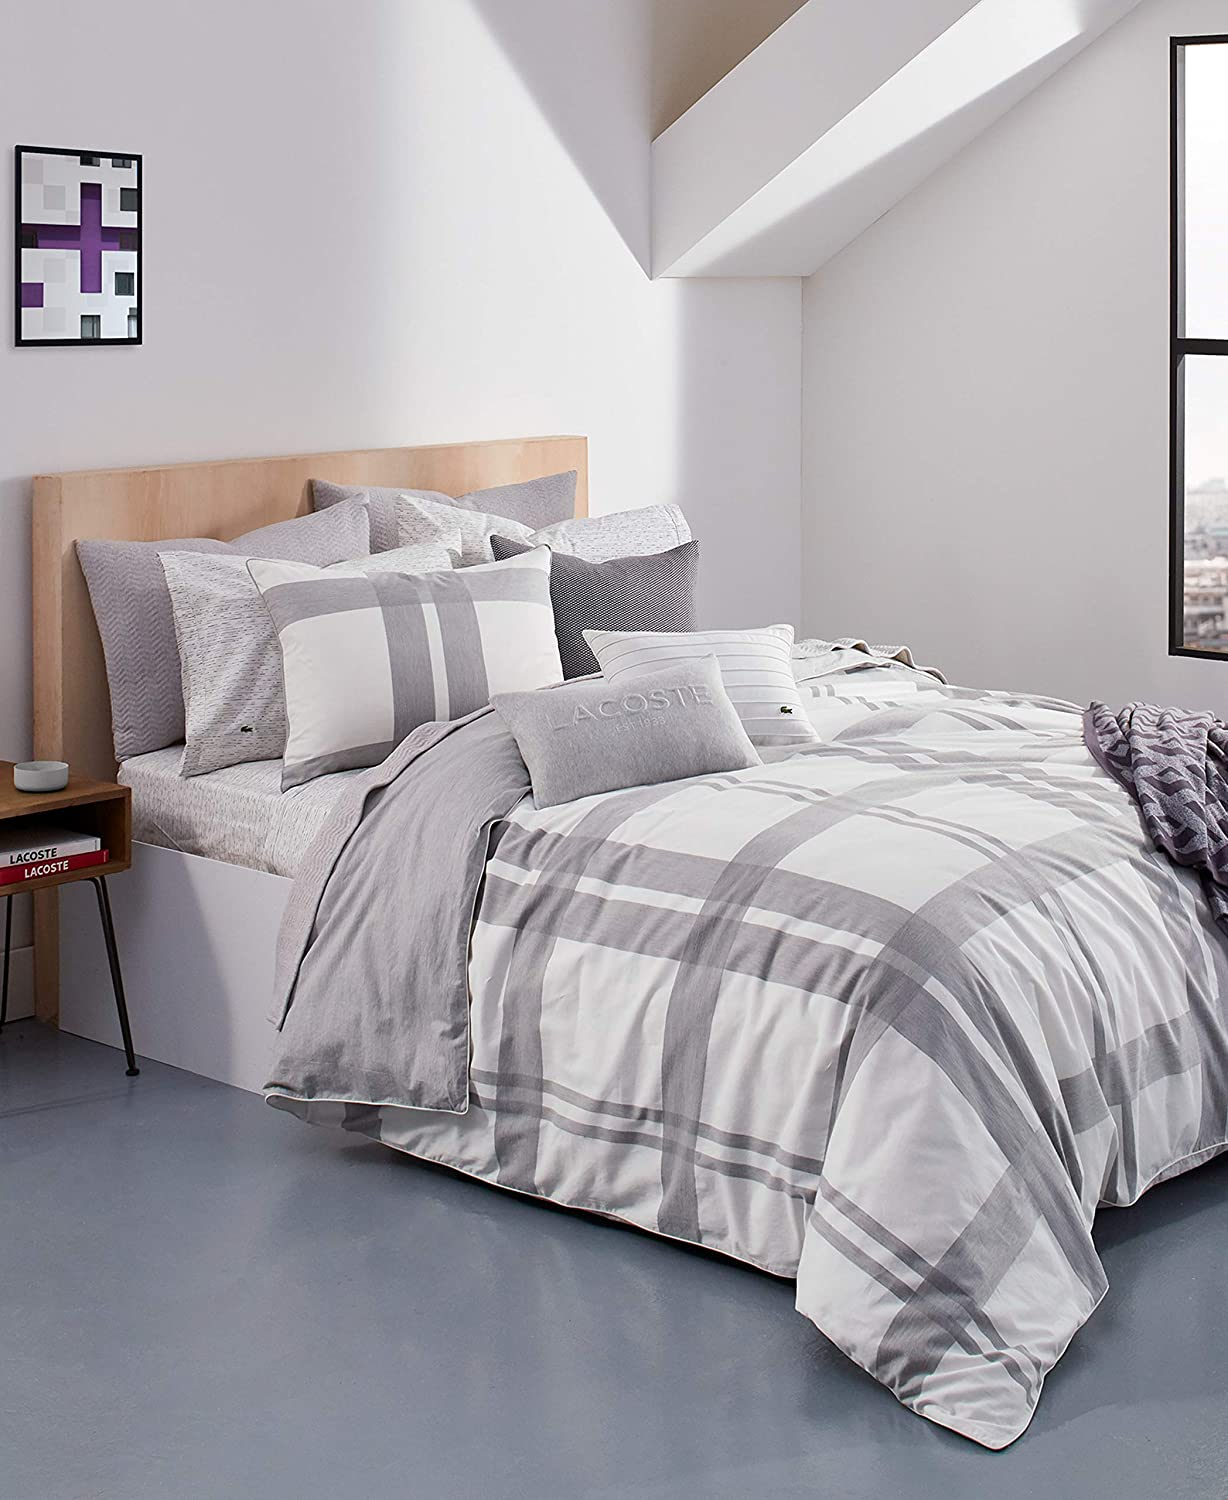 Lacoste Baseline Comforter Set Full Micro White Chip Queen Max Easy-to-use 72% OFF